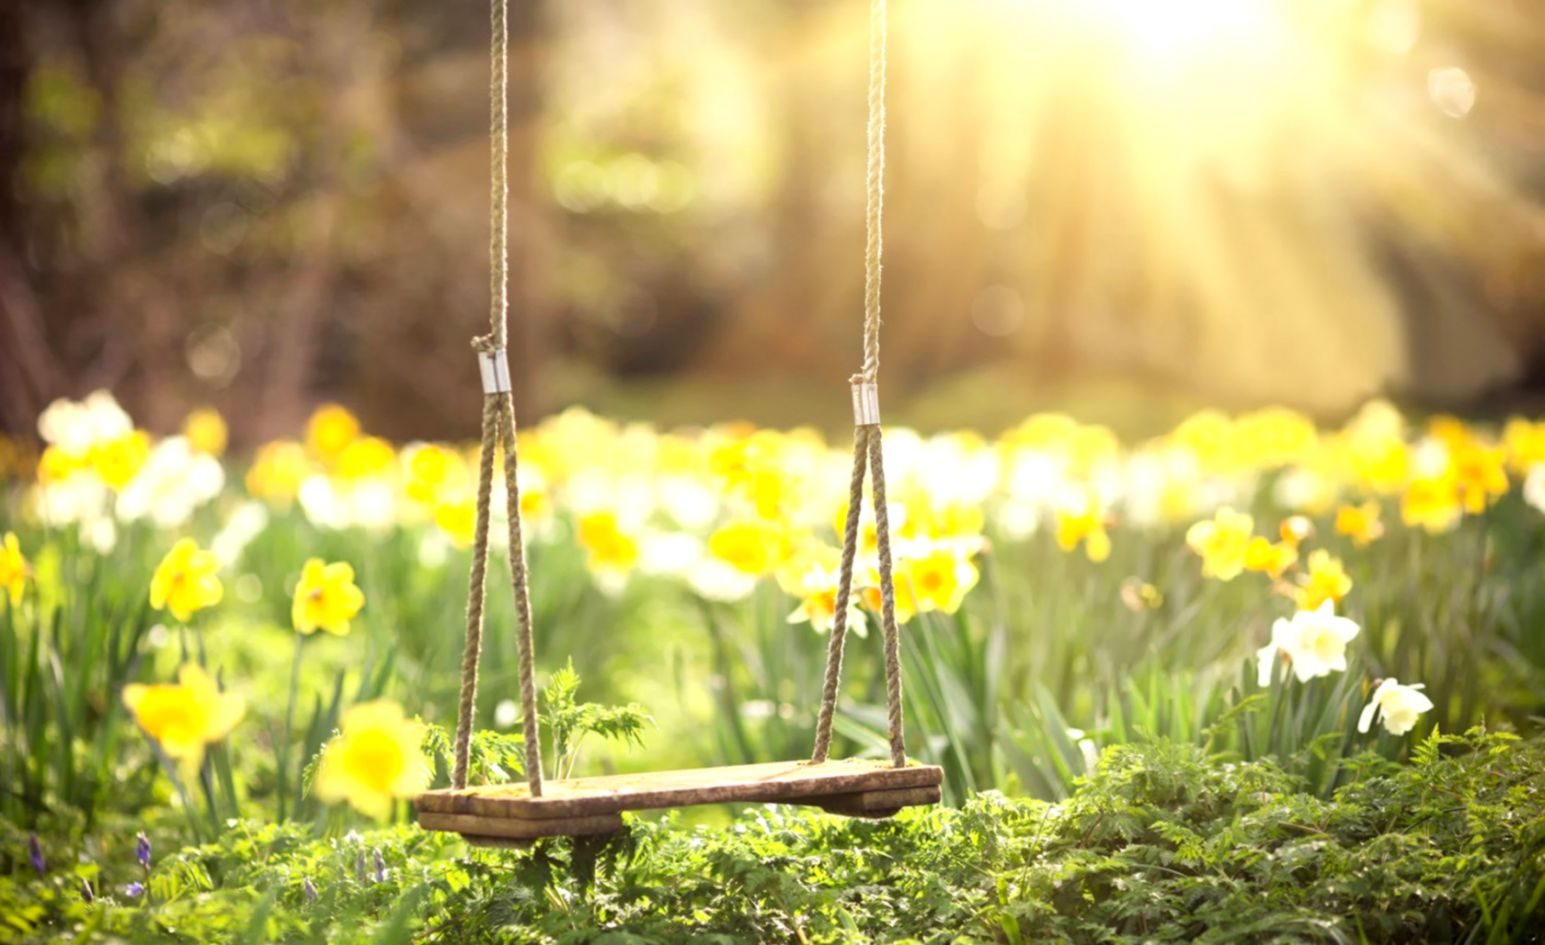 Colorful Swings Abstract Wallpapers HD Wallpapers ID